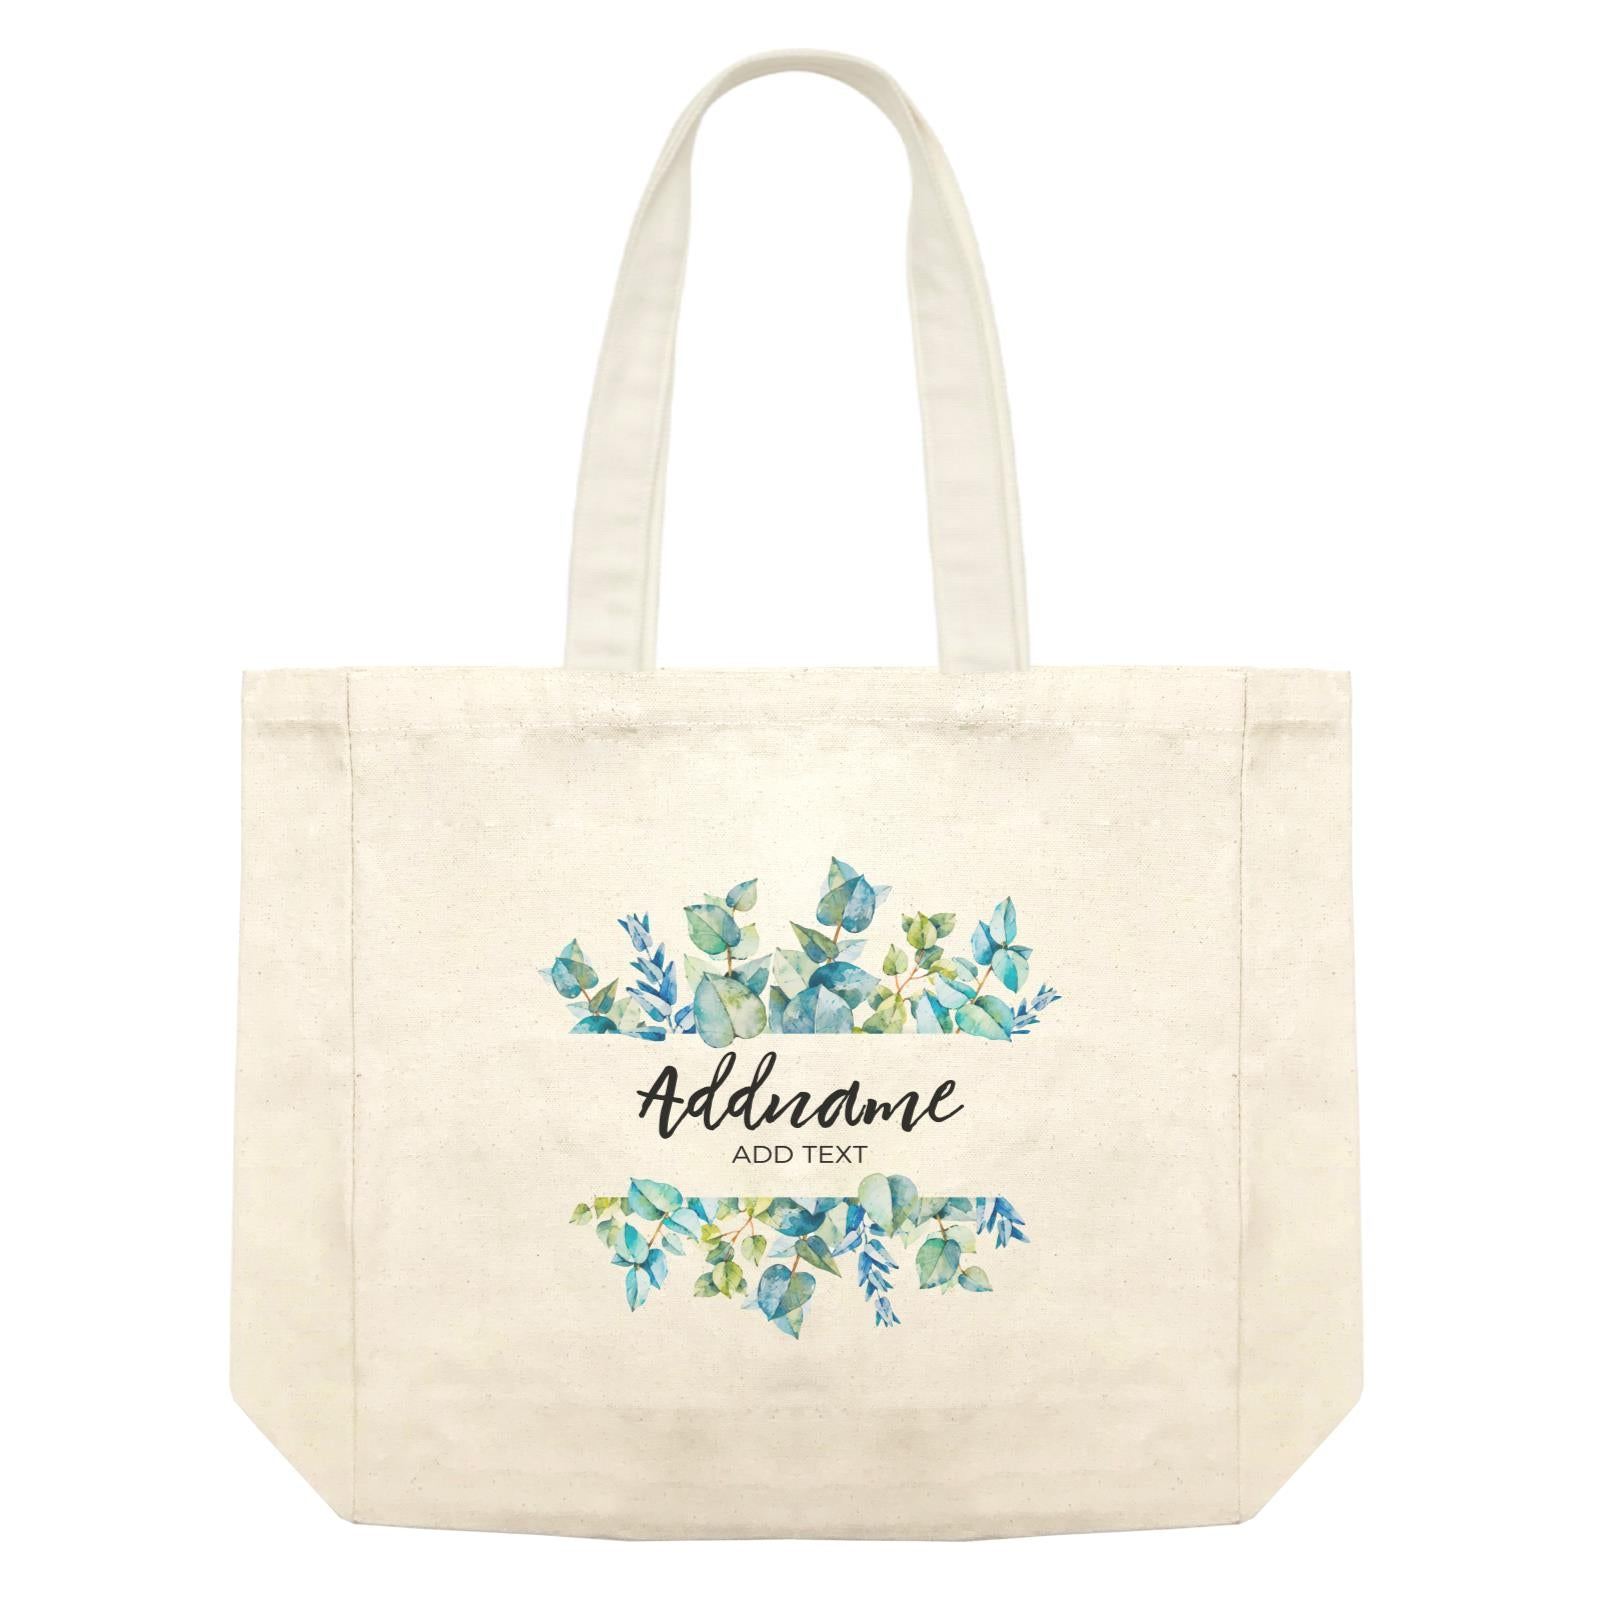 Add Your Own Text Teacher Blue Leaves Box Addname And Add Text Shopping Bag